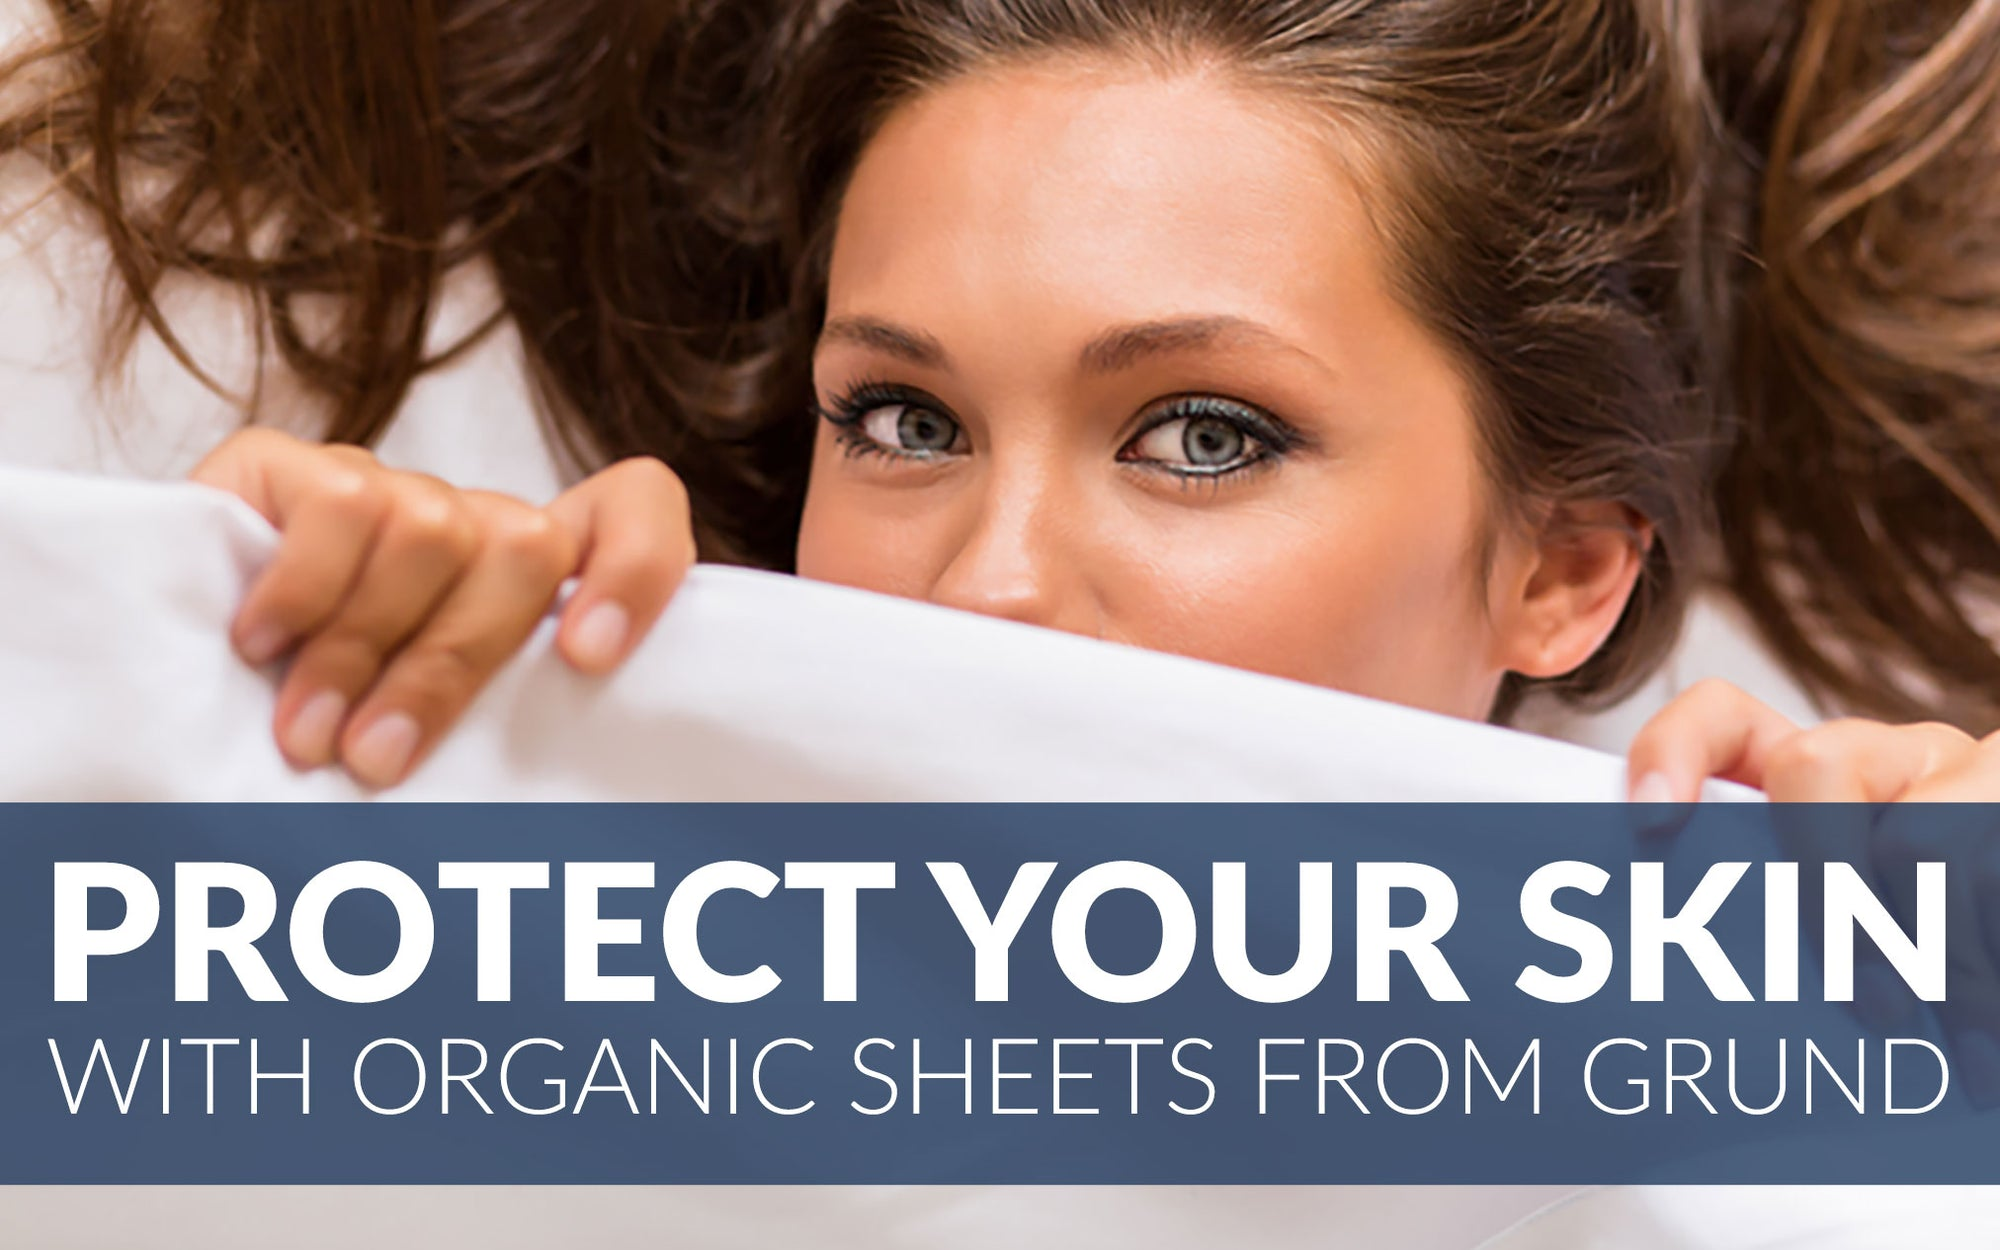 Protect Your Skin With Organic Sheets